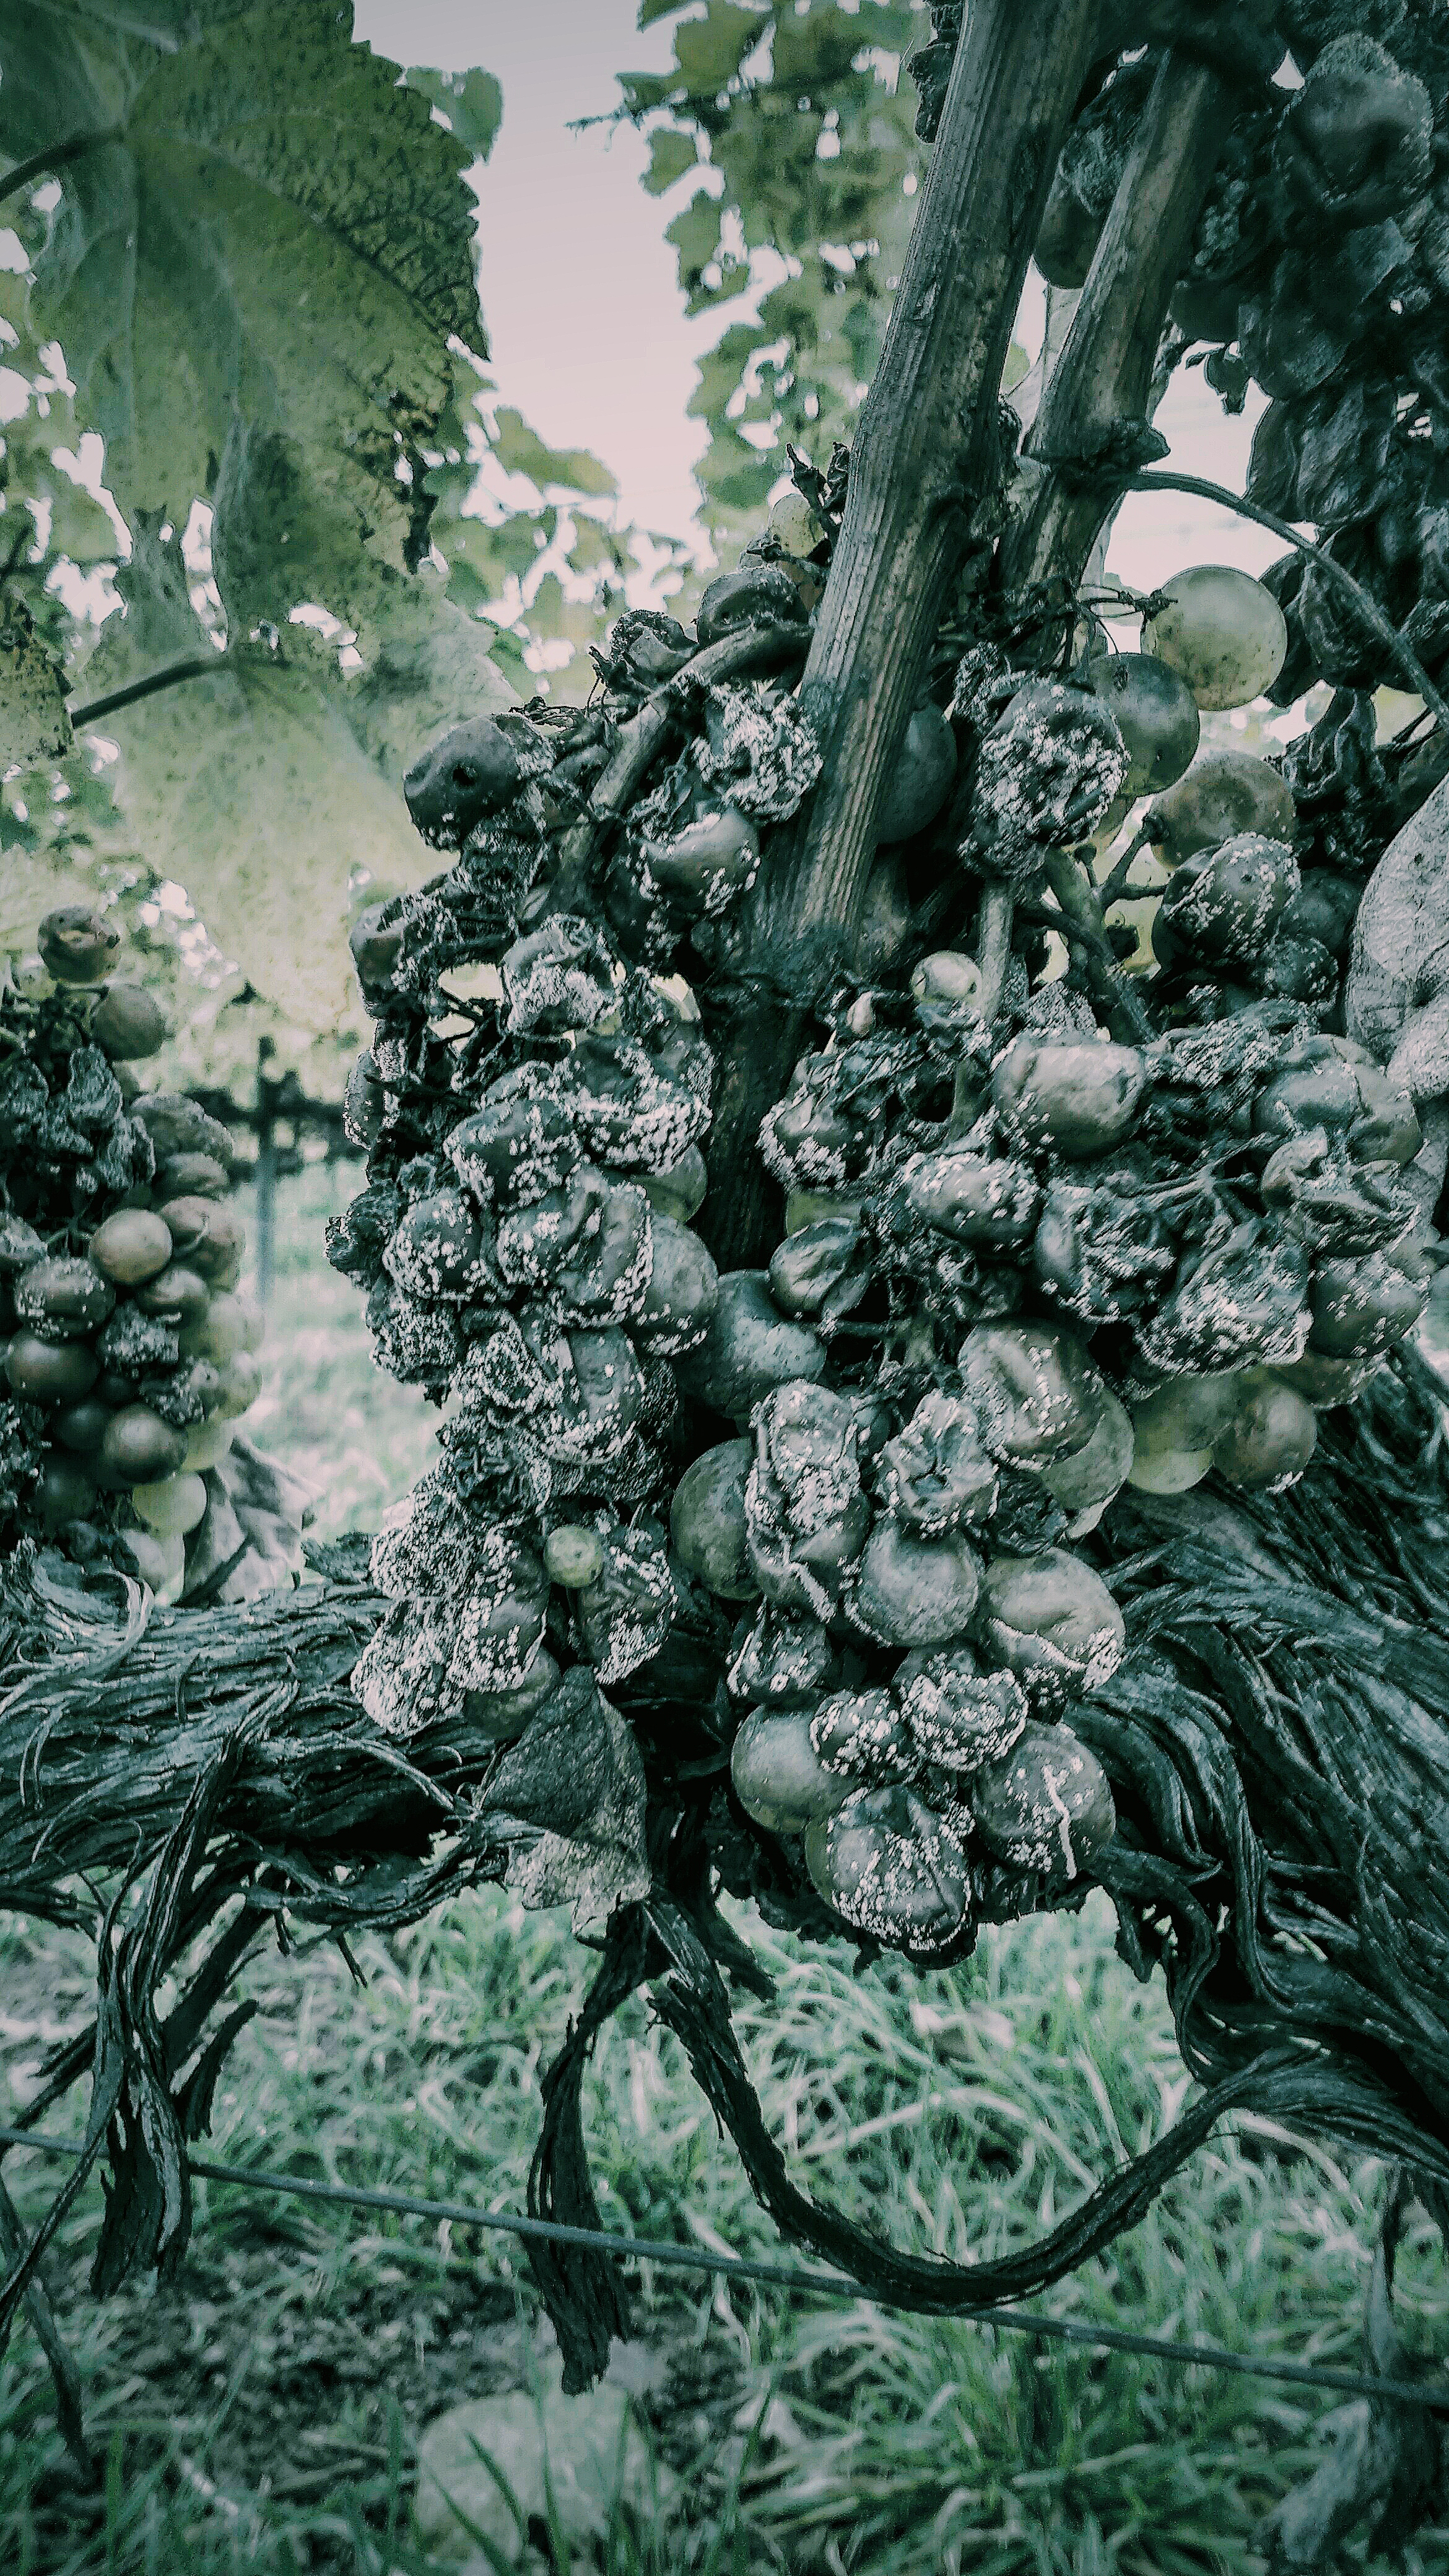 The 'noble rot' in all its glory...